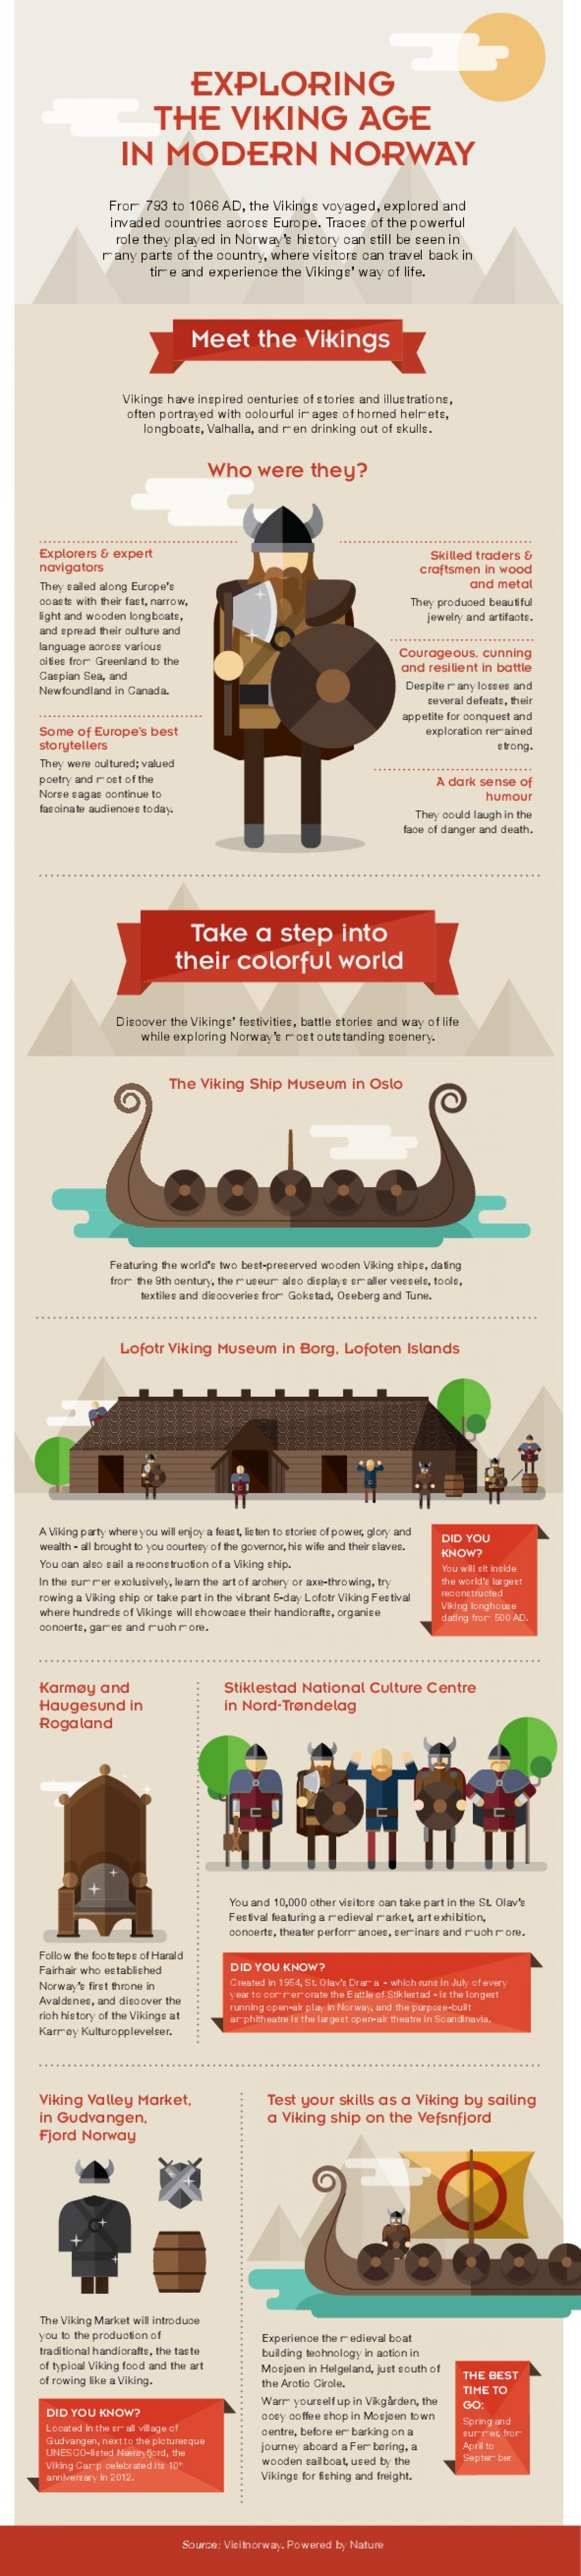 Exploring The Viking Age in Modern Norway Infographic